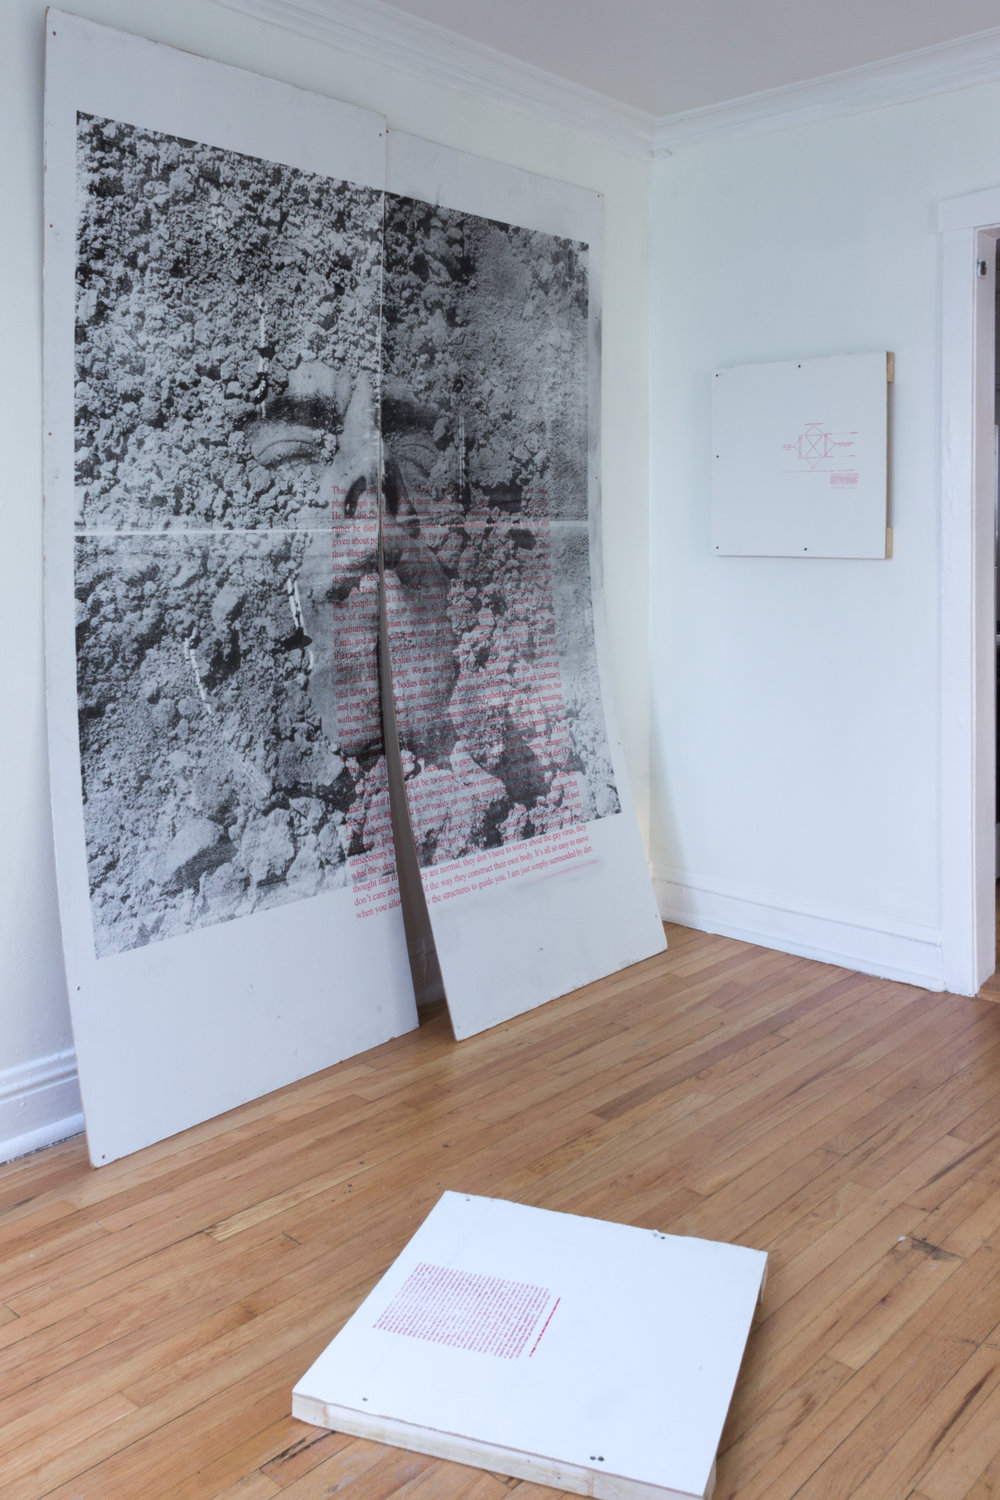 Installation view at Apparatus